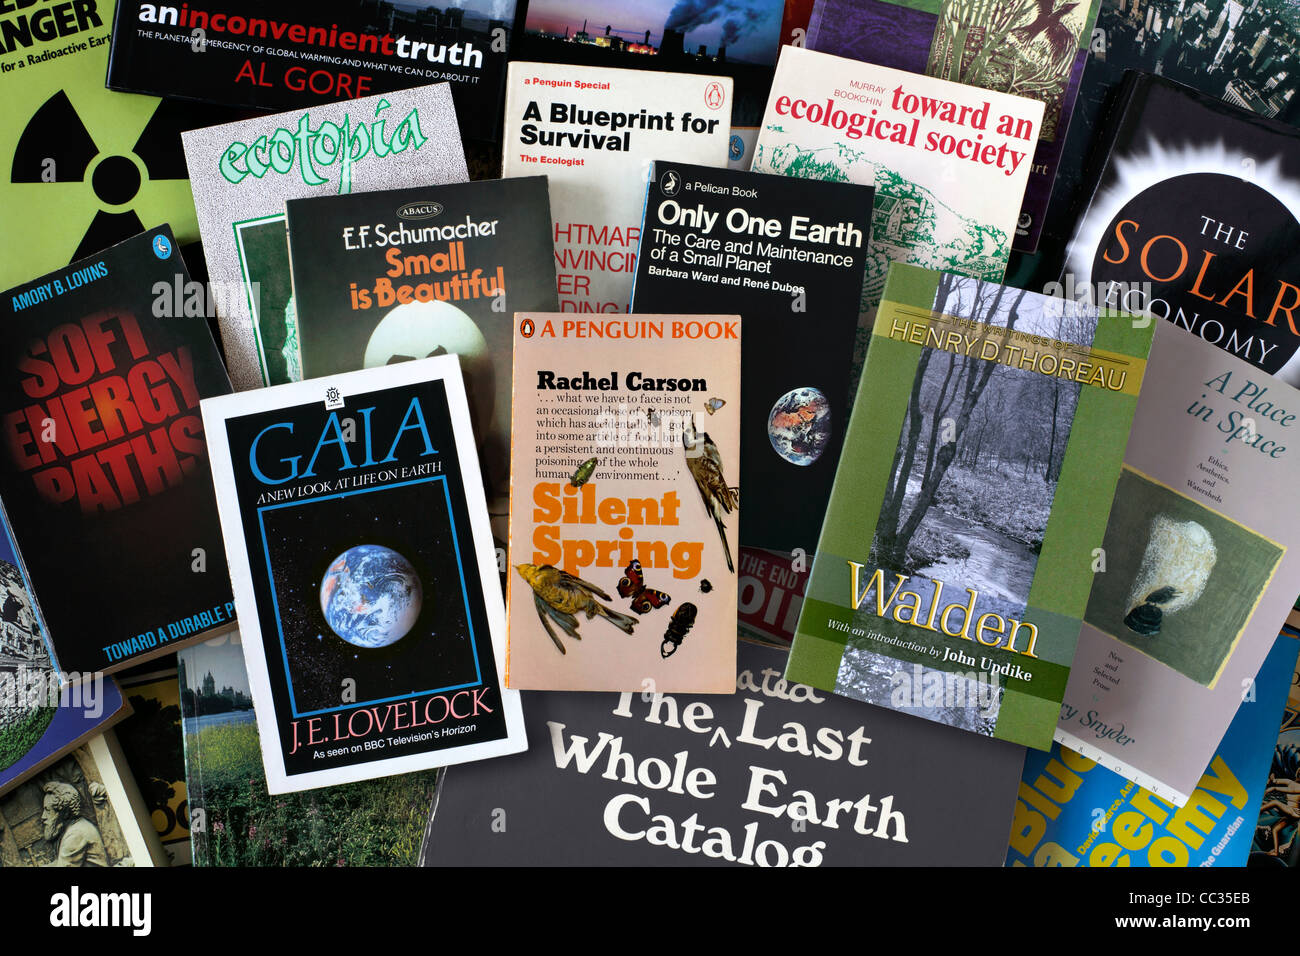 A selection of books on environmental issues, including some historic titles that have influenced the green movement. - Stock Image